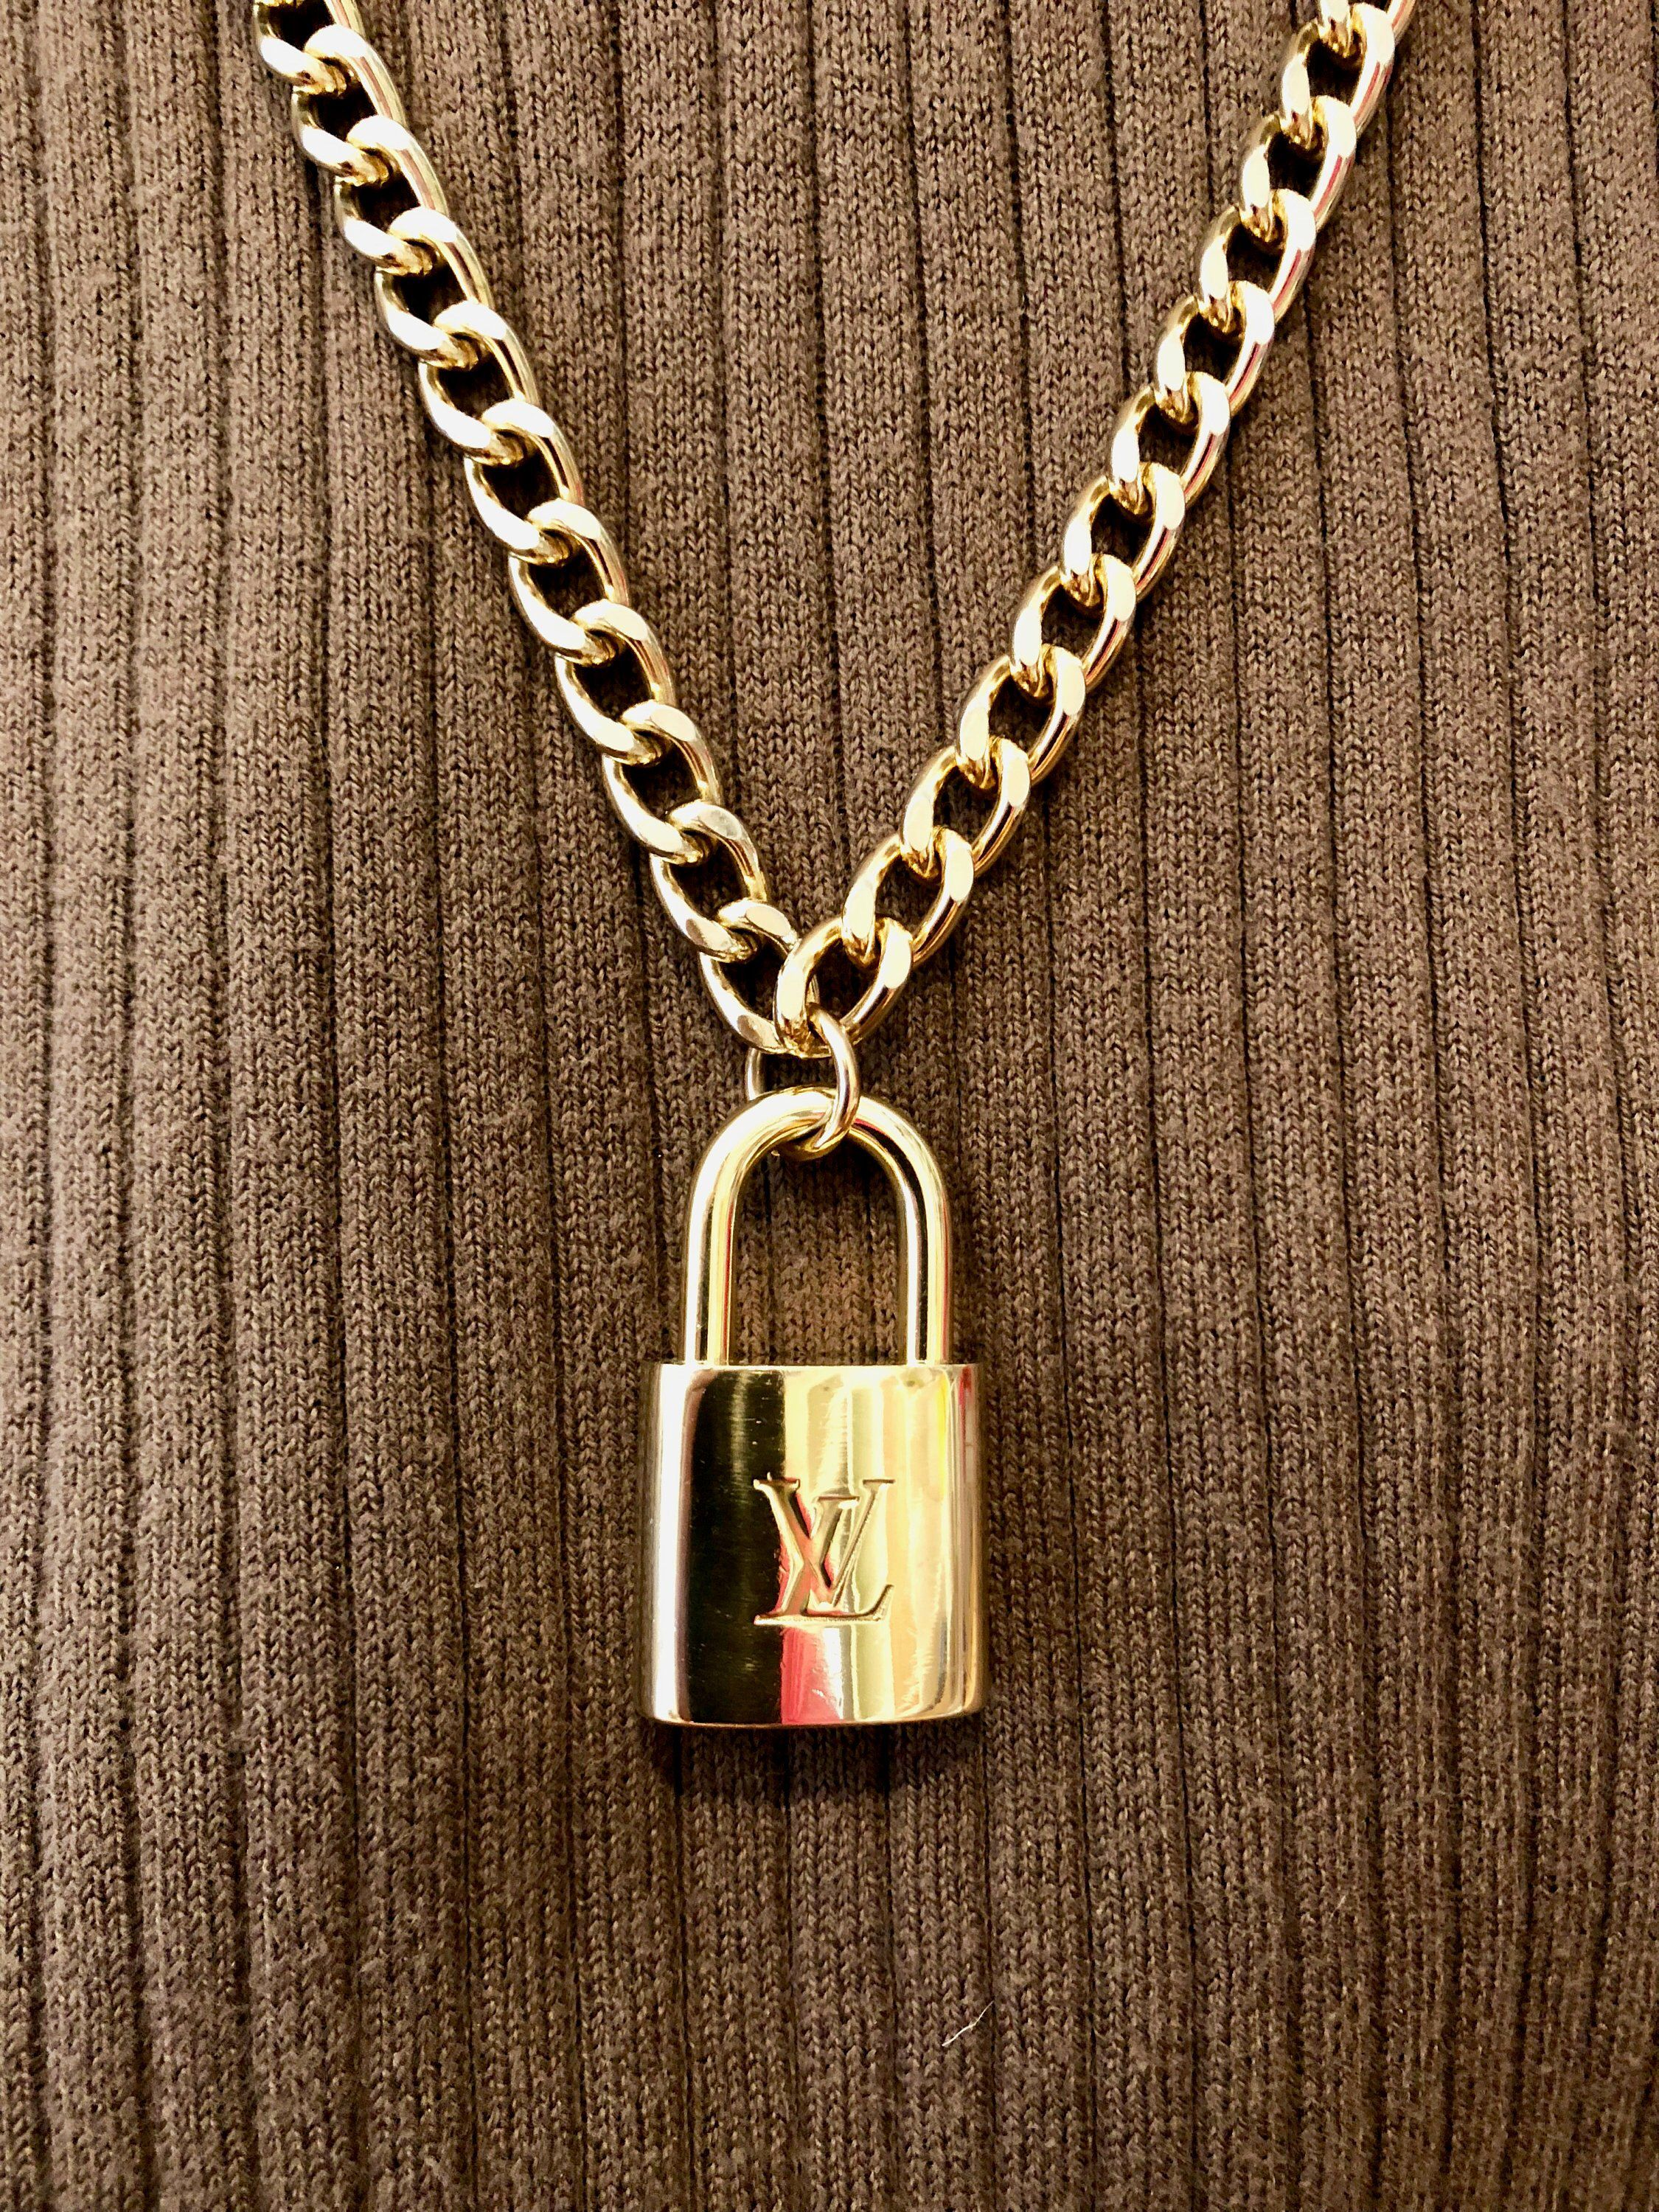 Verwonderend Pin by LouisVuittonUpcycle on Vuitton Style in 2019 | Gold JR-61